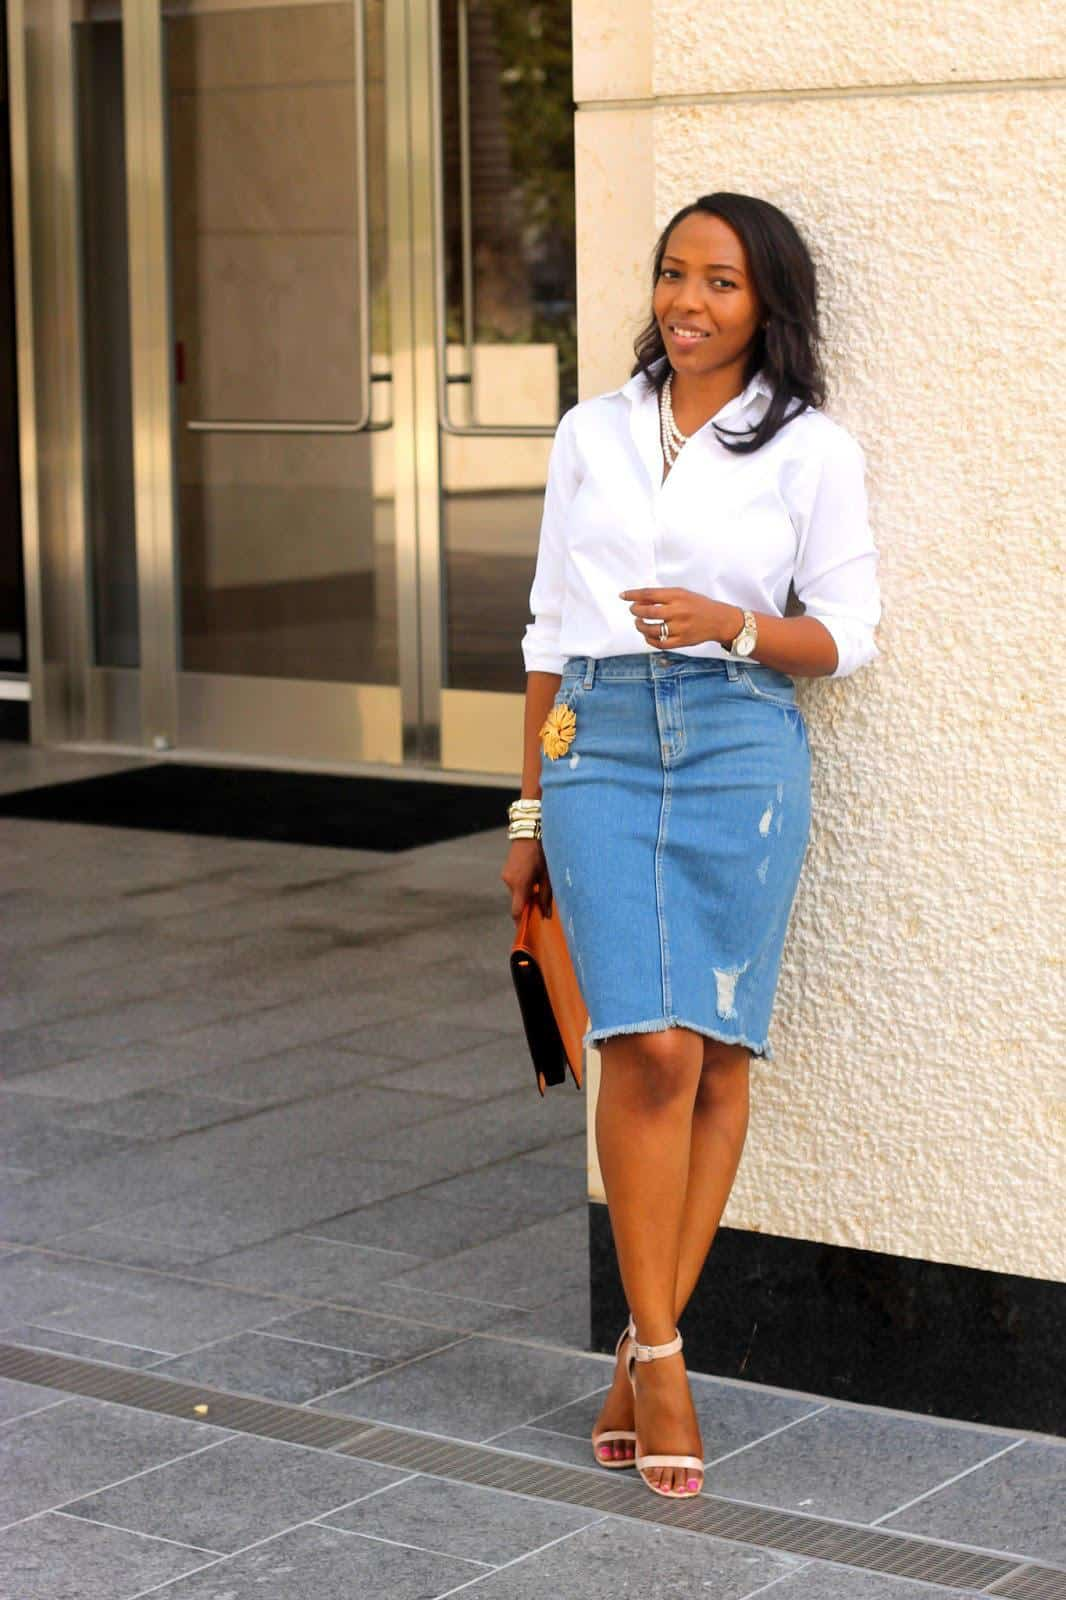 Working-Outfits-for-Teenagers Work Outfits for African Women-25 Professional Attires